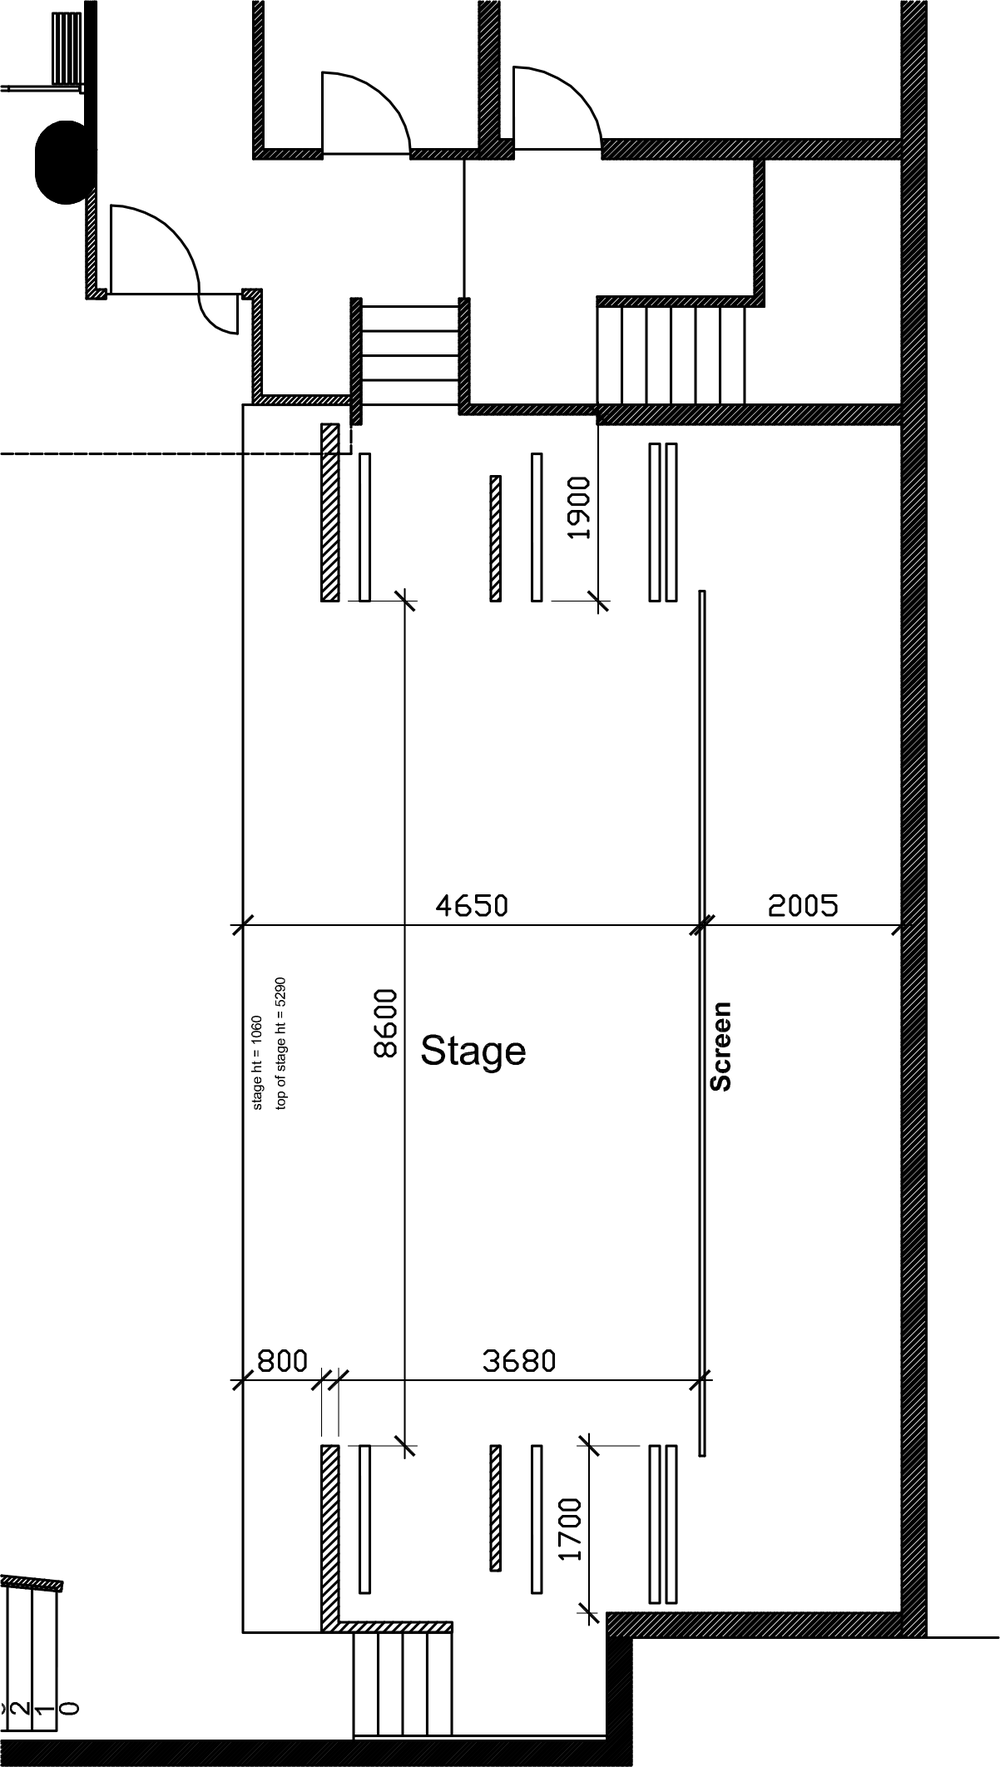 Stage Dimensions